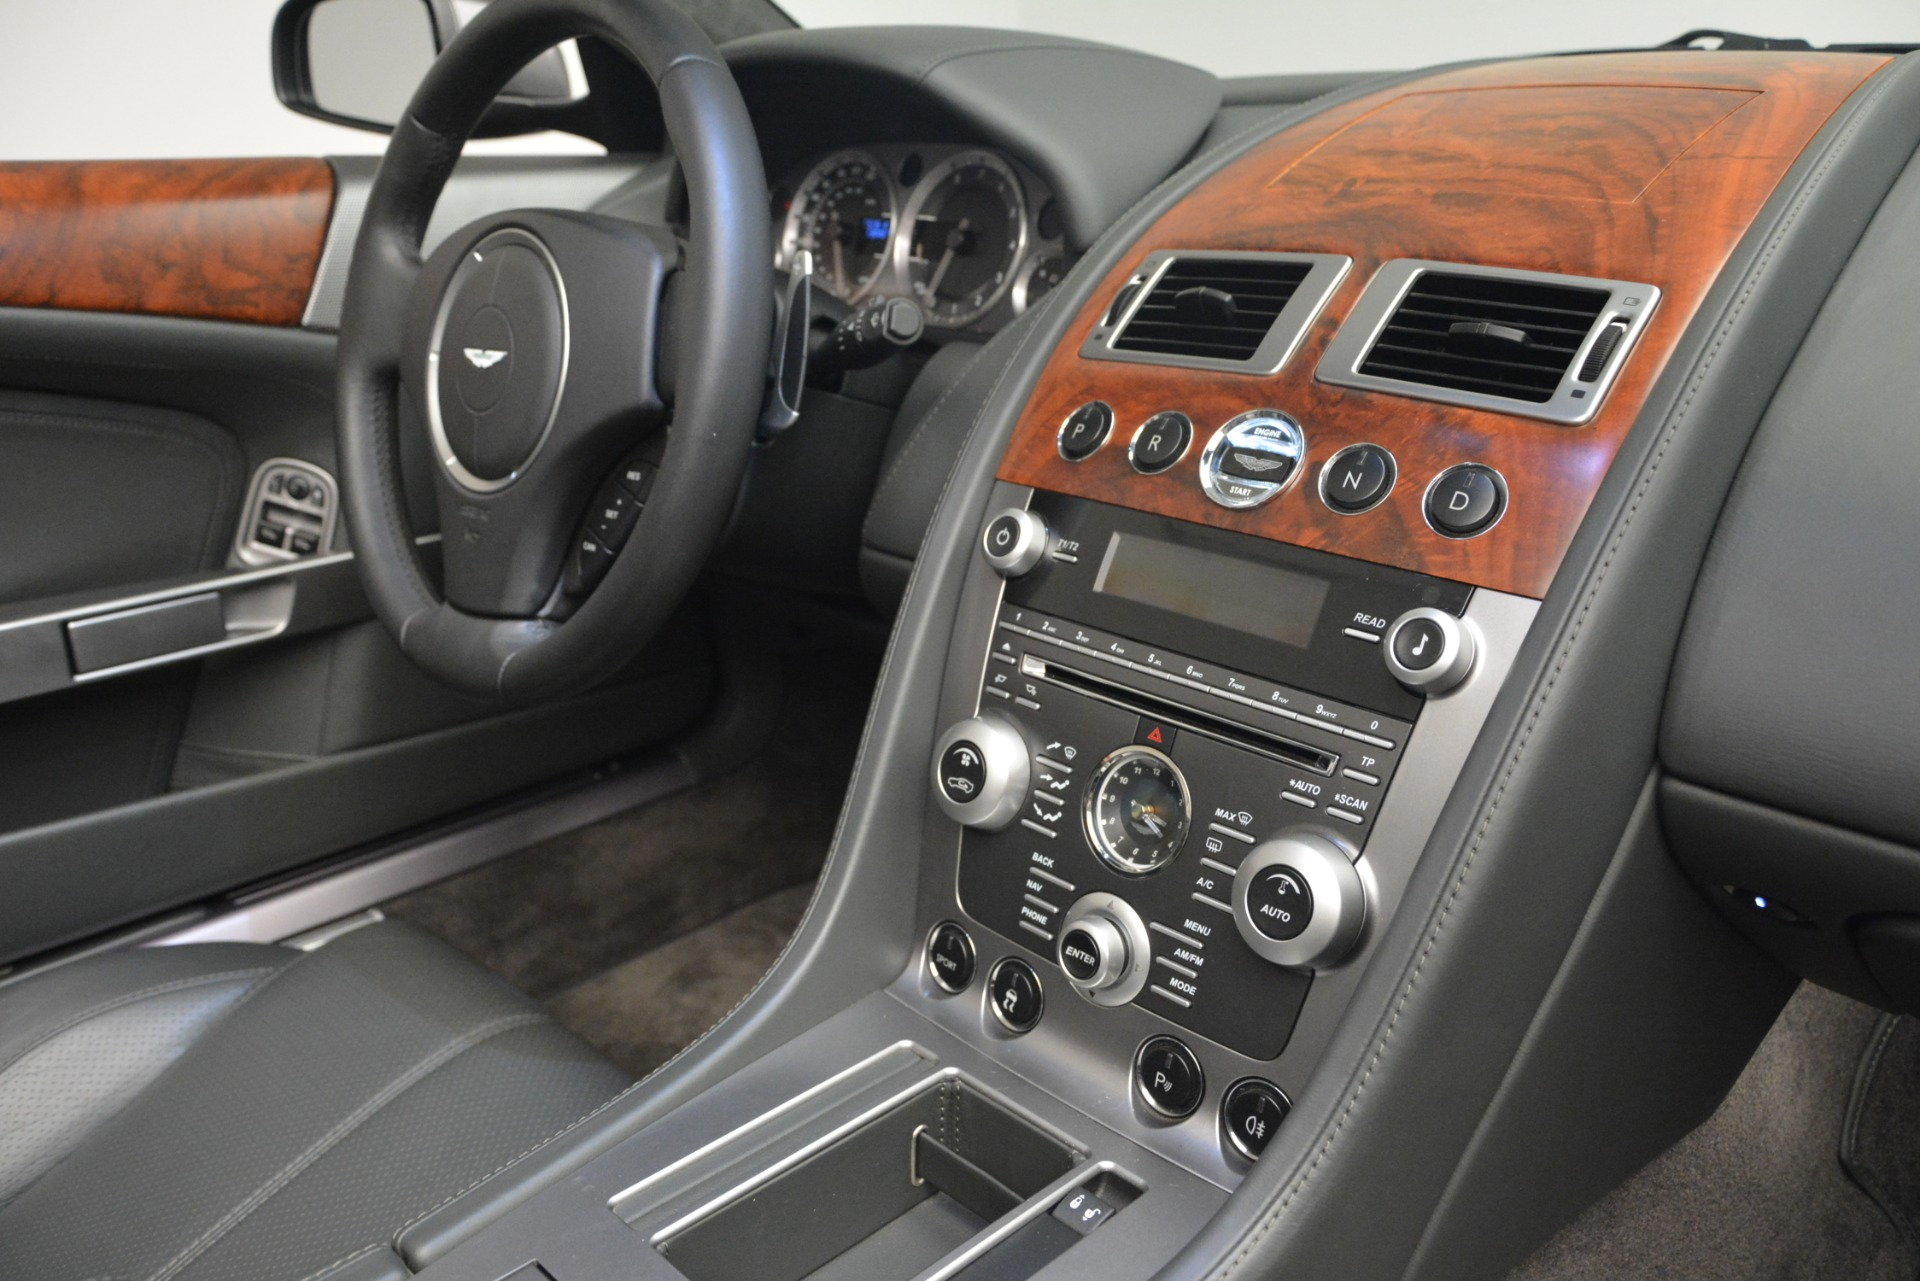 Used 2009 Aston Martin DB9 Convertible For Sale In Westport, CT 2930_p25